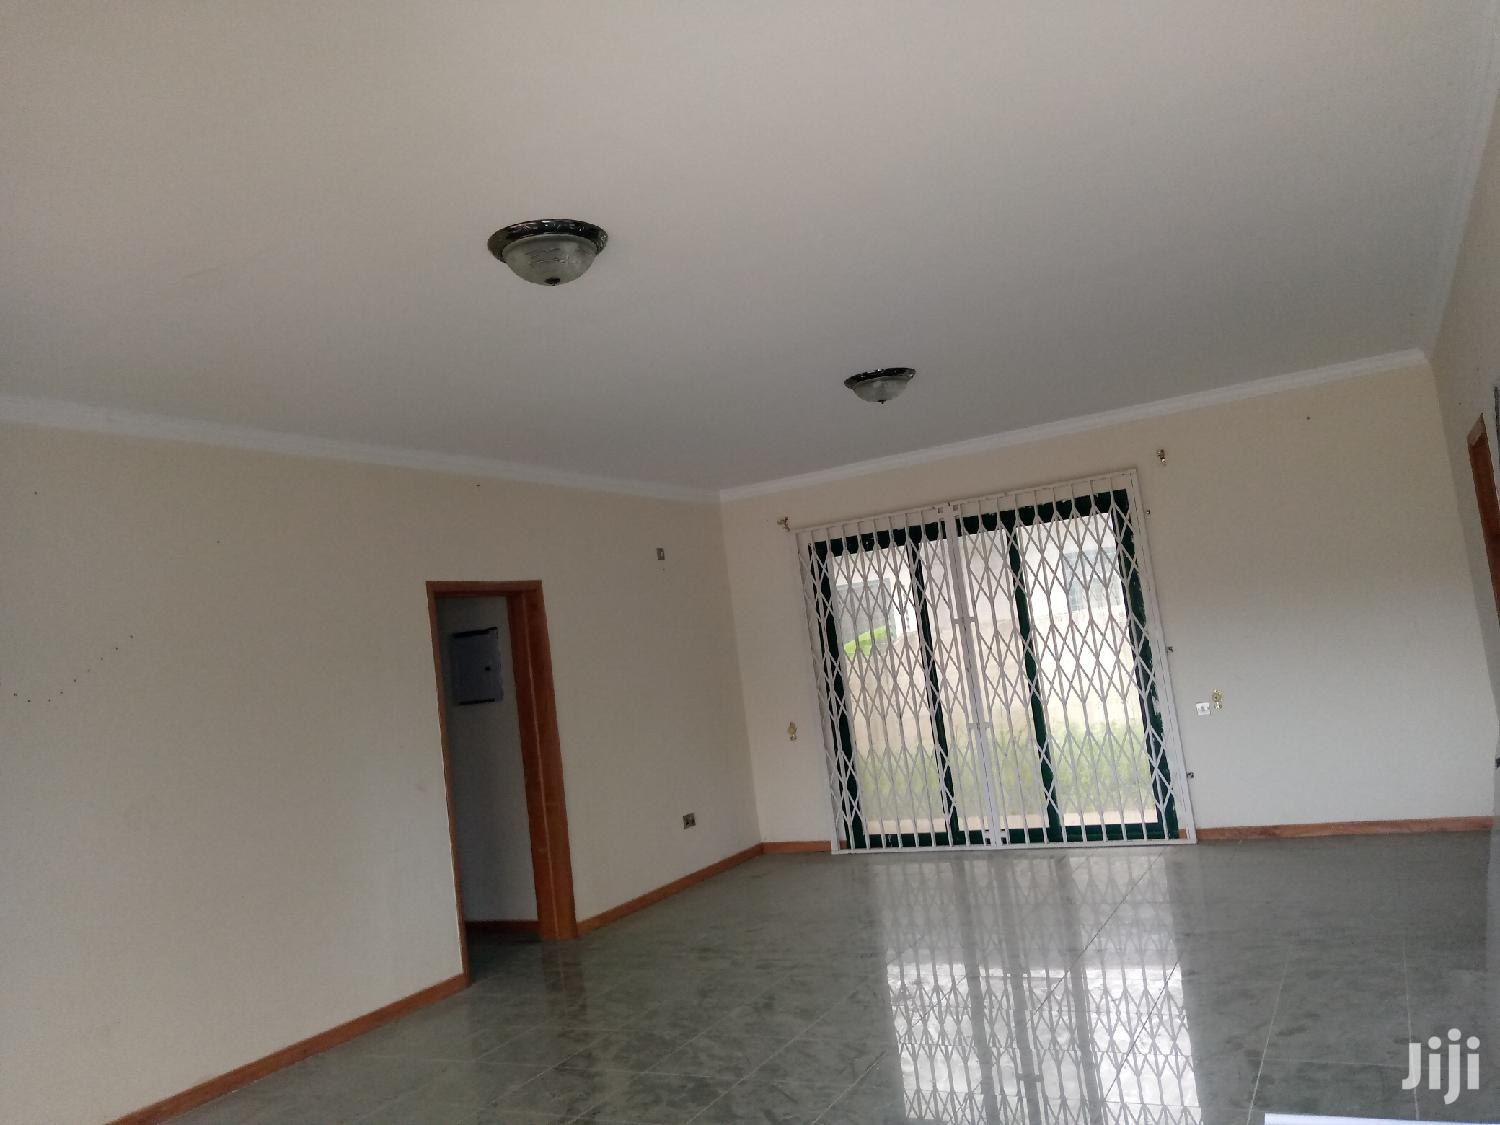 3 Bedroom House for Sale in Kasoa | Houses & Apartments For Sale for sale in Awutu-Senya, Central Region, Ghana